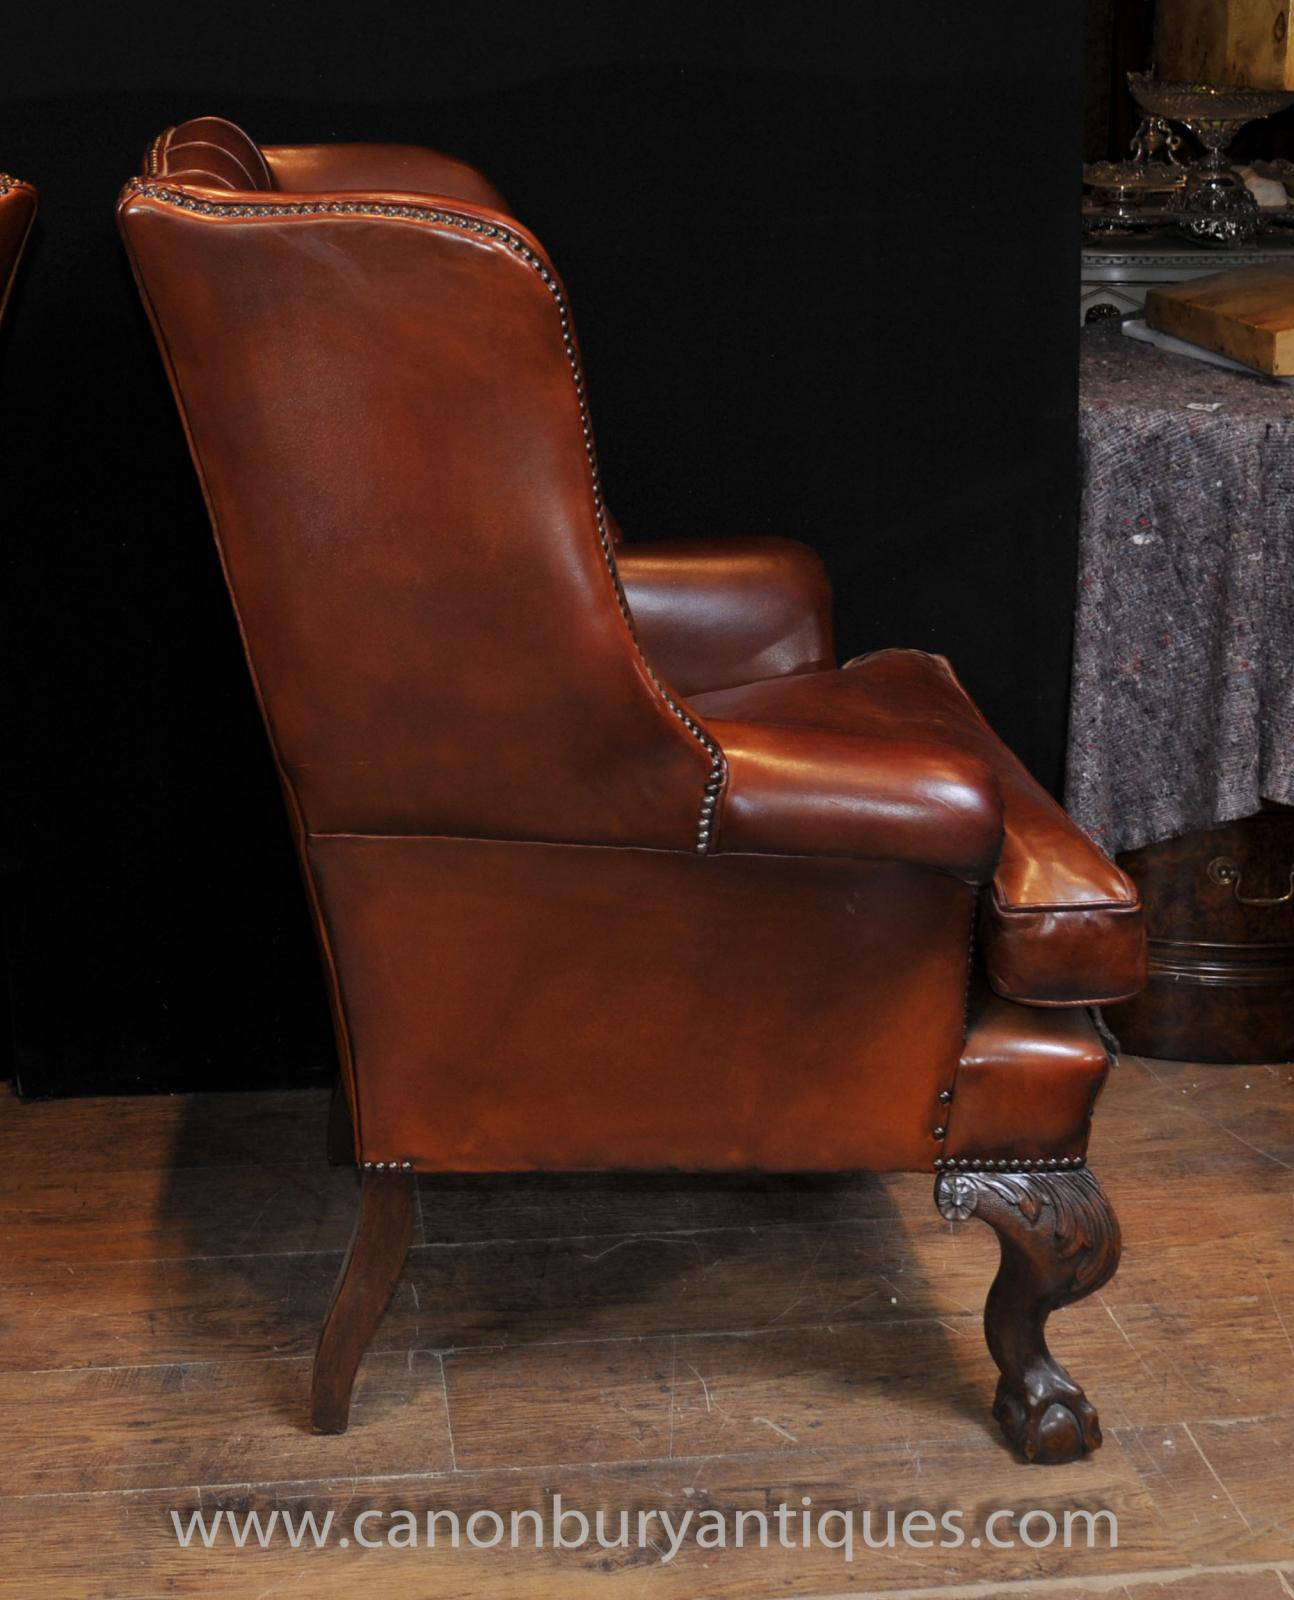 leather wing chair uk emil j paidar barber 1959 pair antique english wingback chesterfield arm chairs